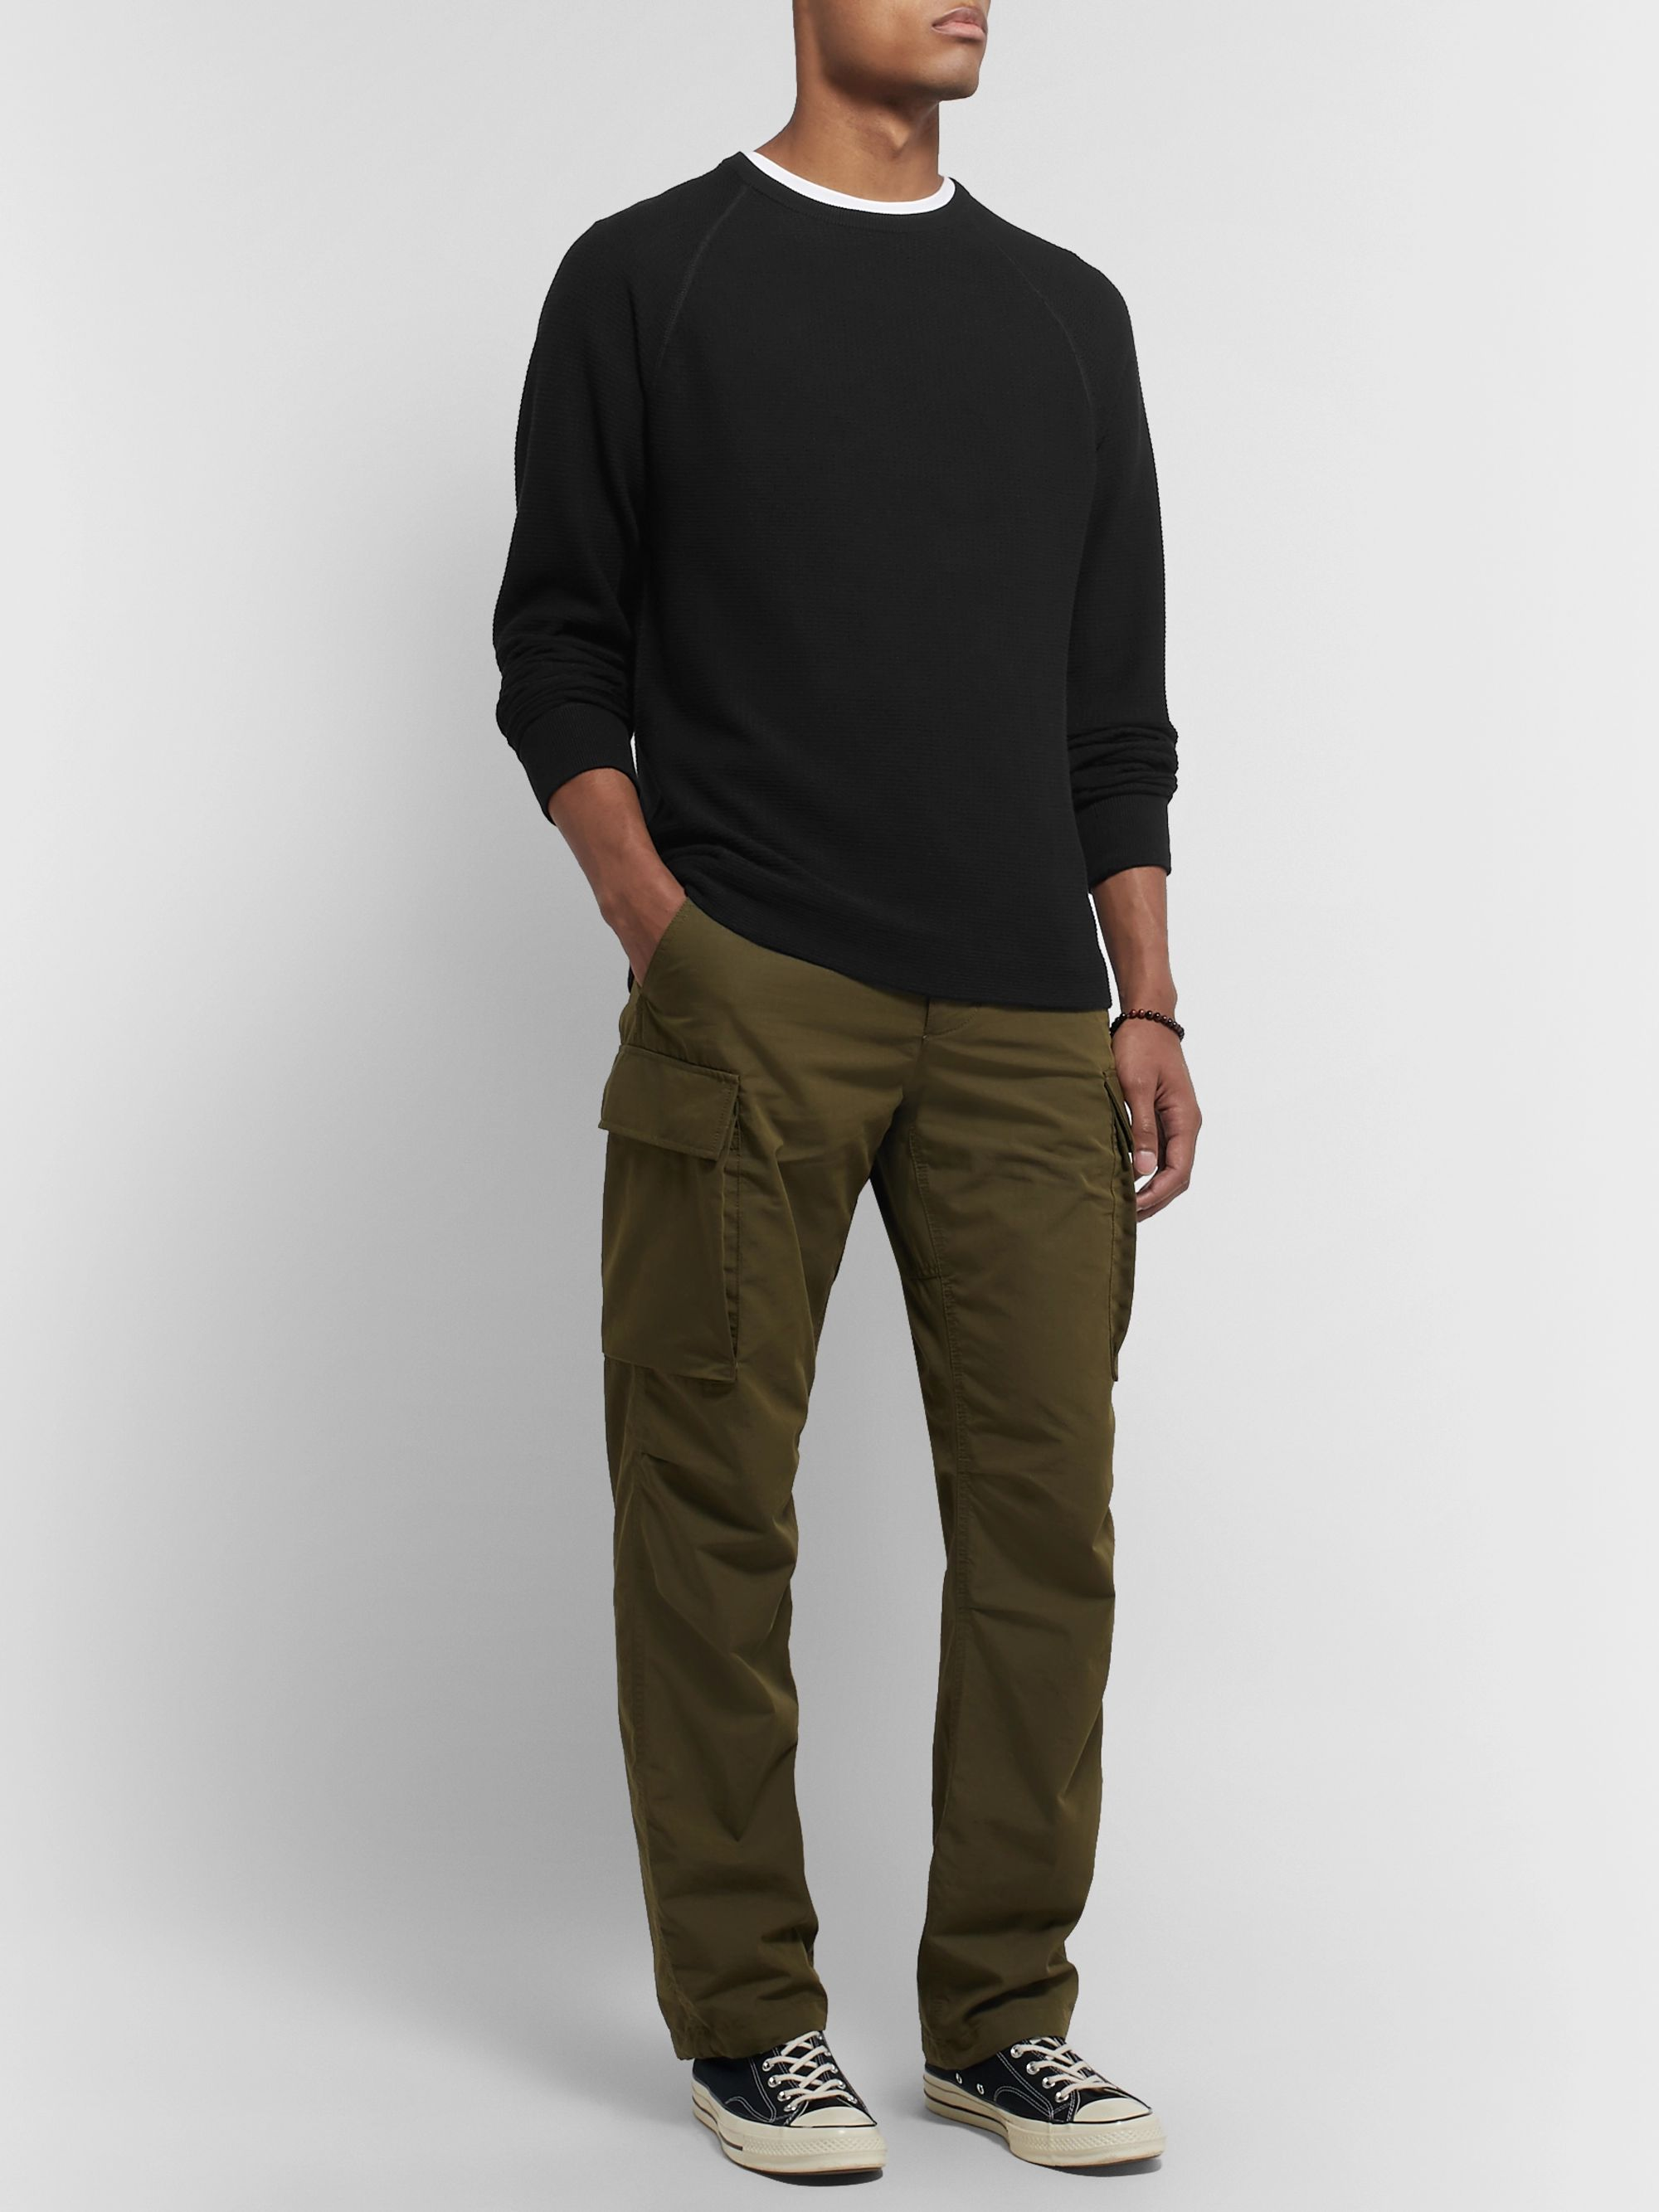 James Perse Waffle-Knit Cotton Sweatshirt